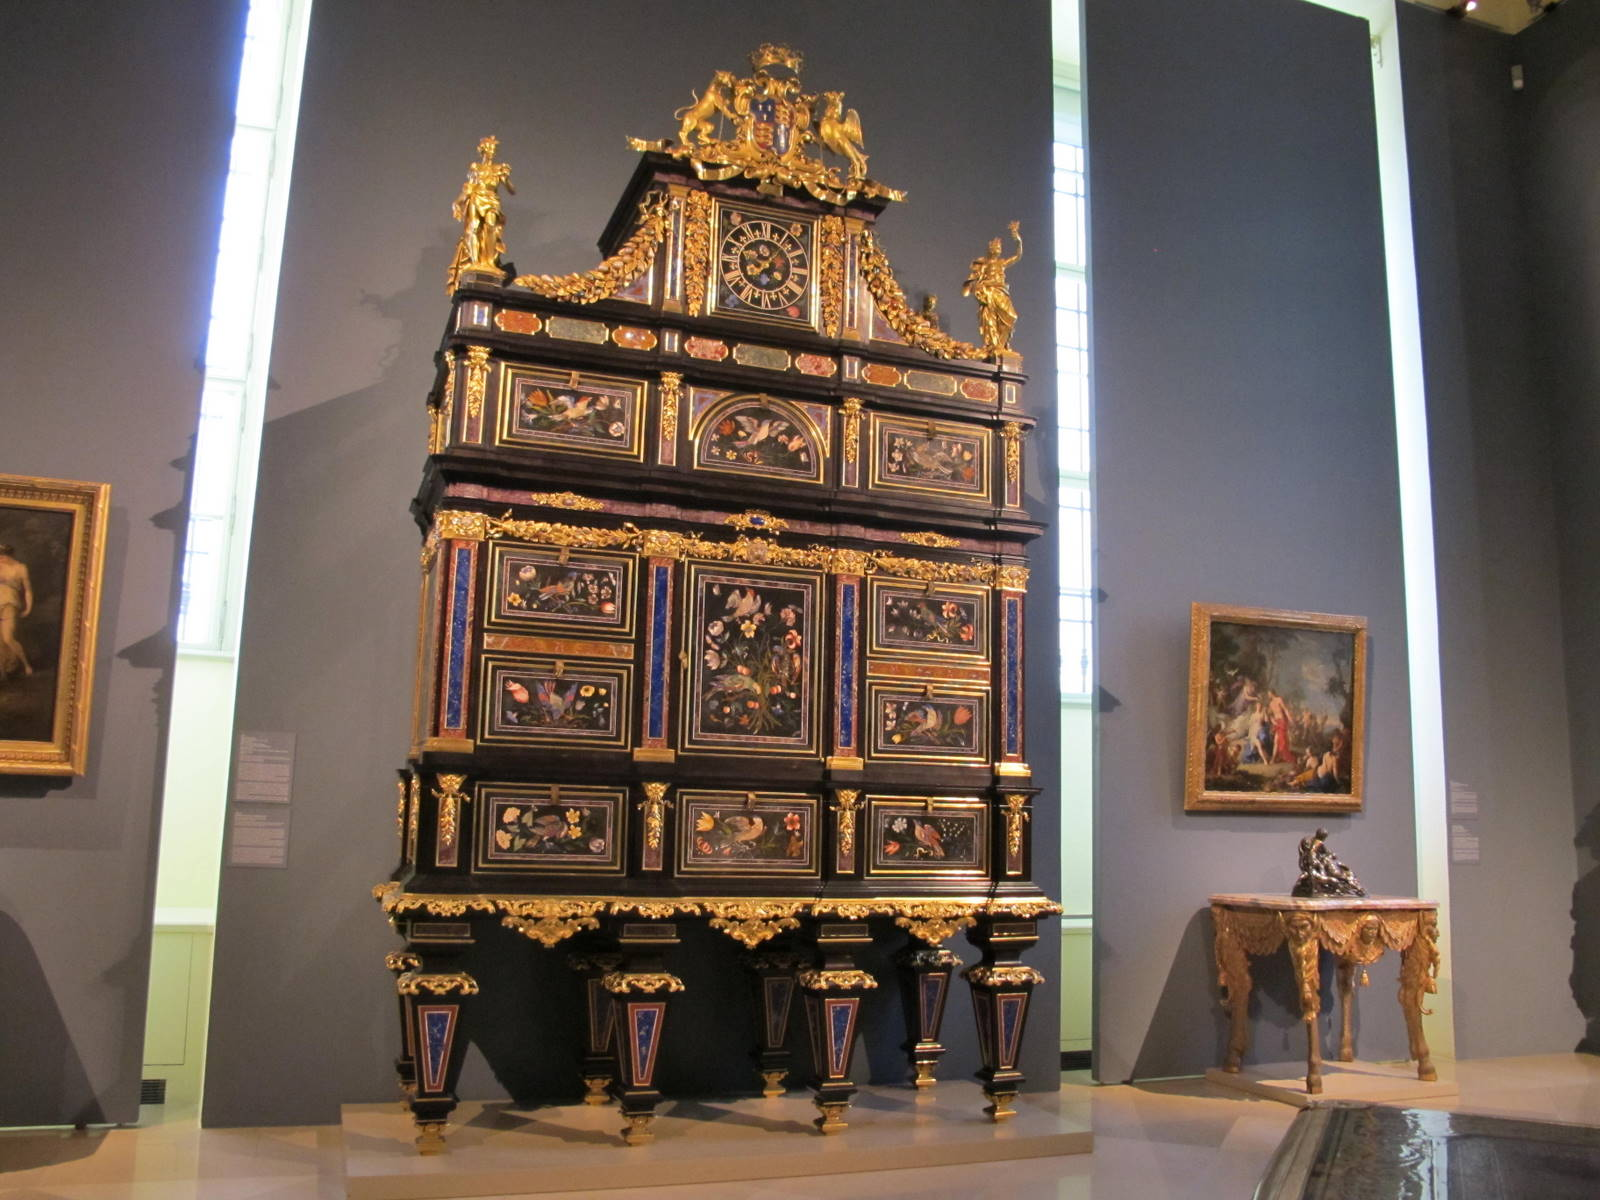 The Badminton Cabinet in Liechtenstein Museum